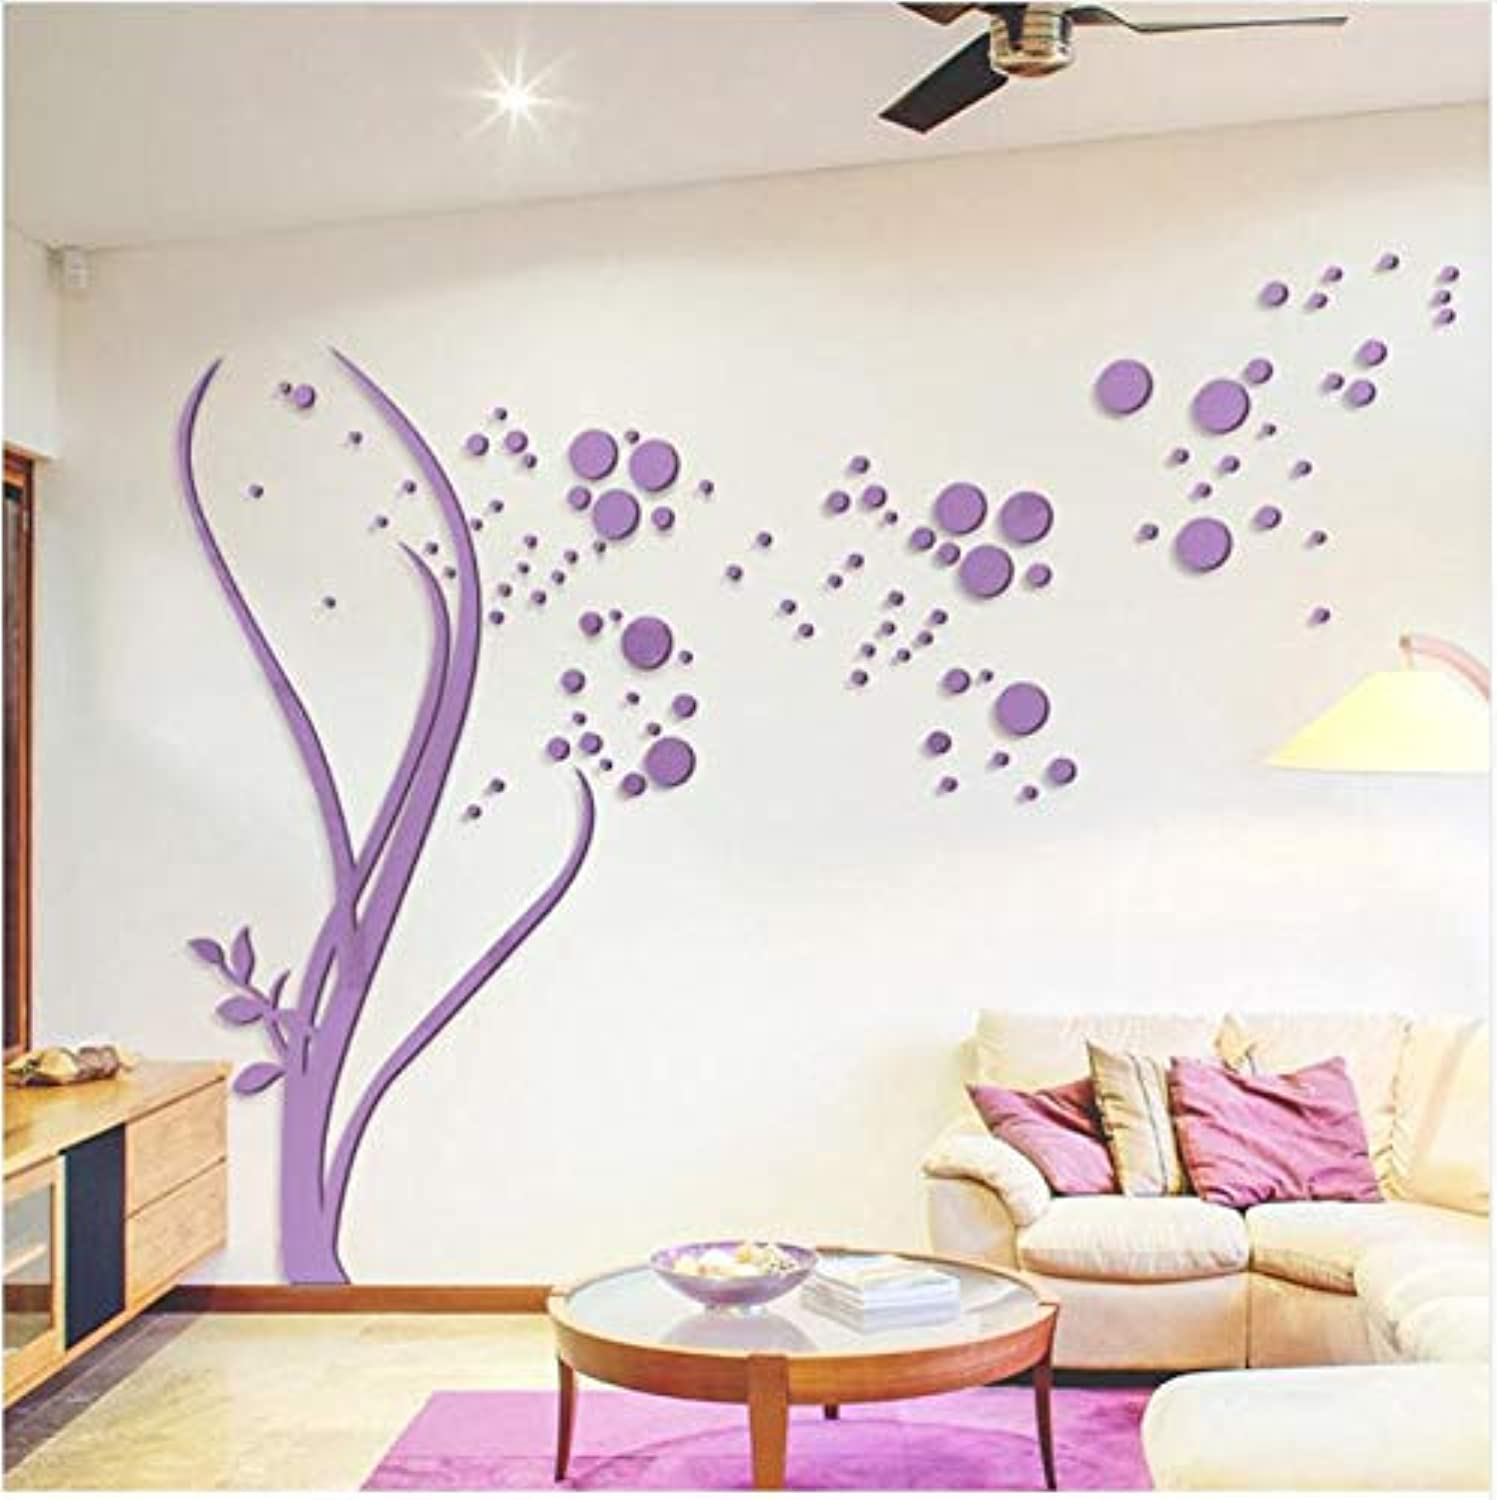 Stickers 3D Large Size Round Dots Tree Wall Stickers Home Decor Living Room Art Background Acrylic Mirror Stickers 3D Wall Decals,150X100Cm,Ayzr